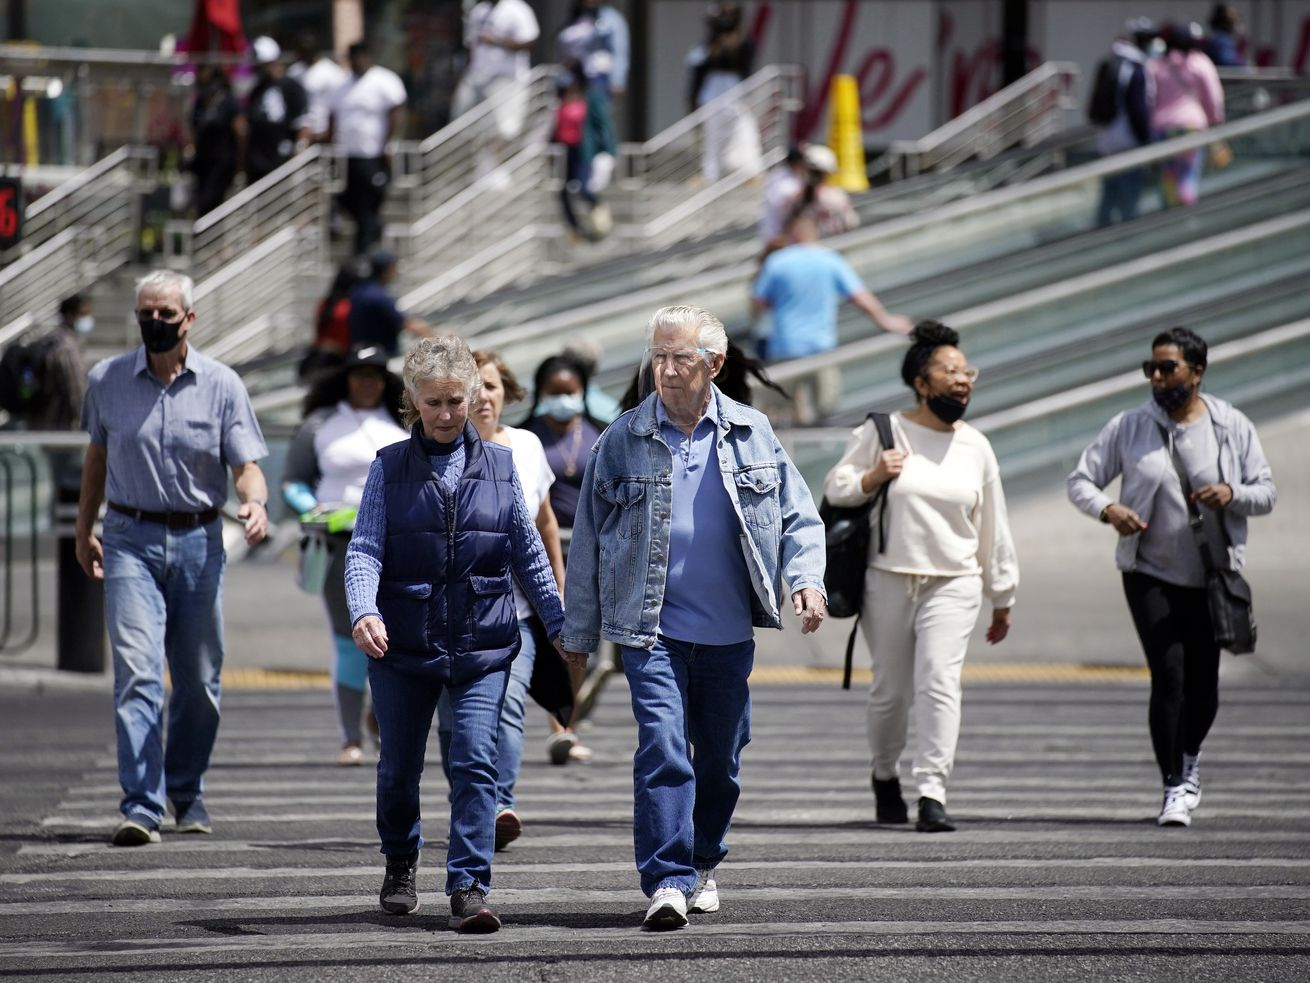 Masked and unmasked pedestrians walk across Las Vegas Boulevard, Tuesday, April 27, 2021, in Las Vegas. The Centers for Disease Control and Prevention eased its guidelines Tuesday on the wearing of masks outdoors, saying fully vaccinated Americans don't need to cover their faces anymore unless they are in a big crowd of strangers.